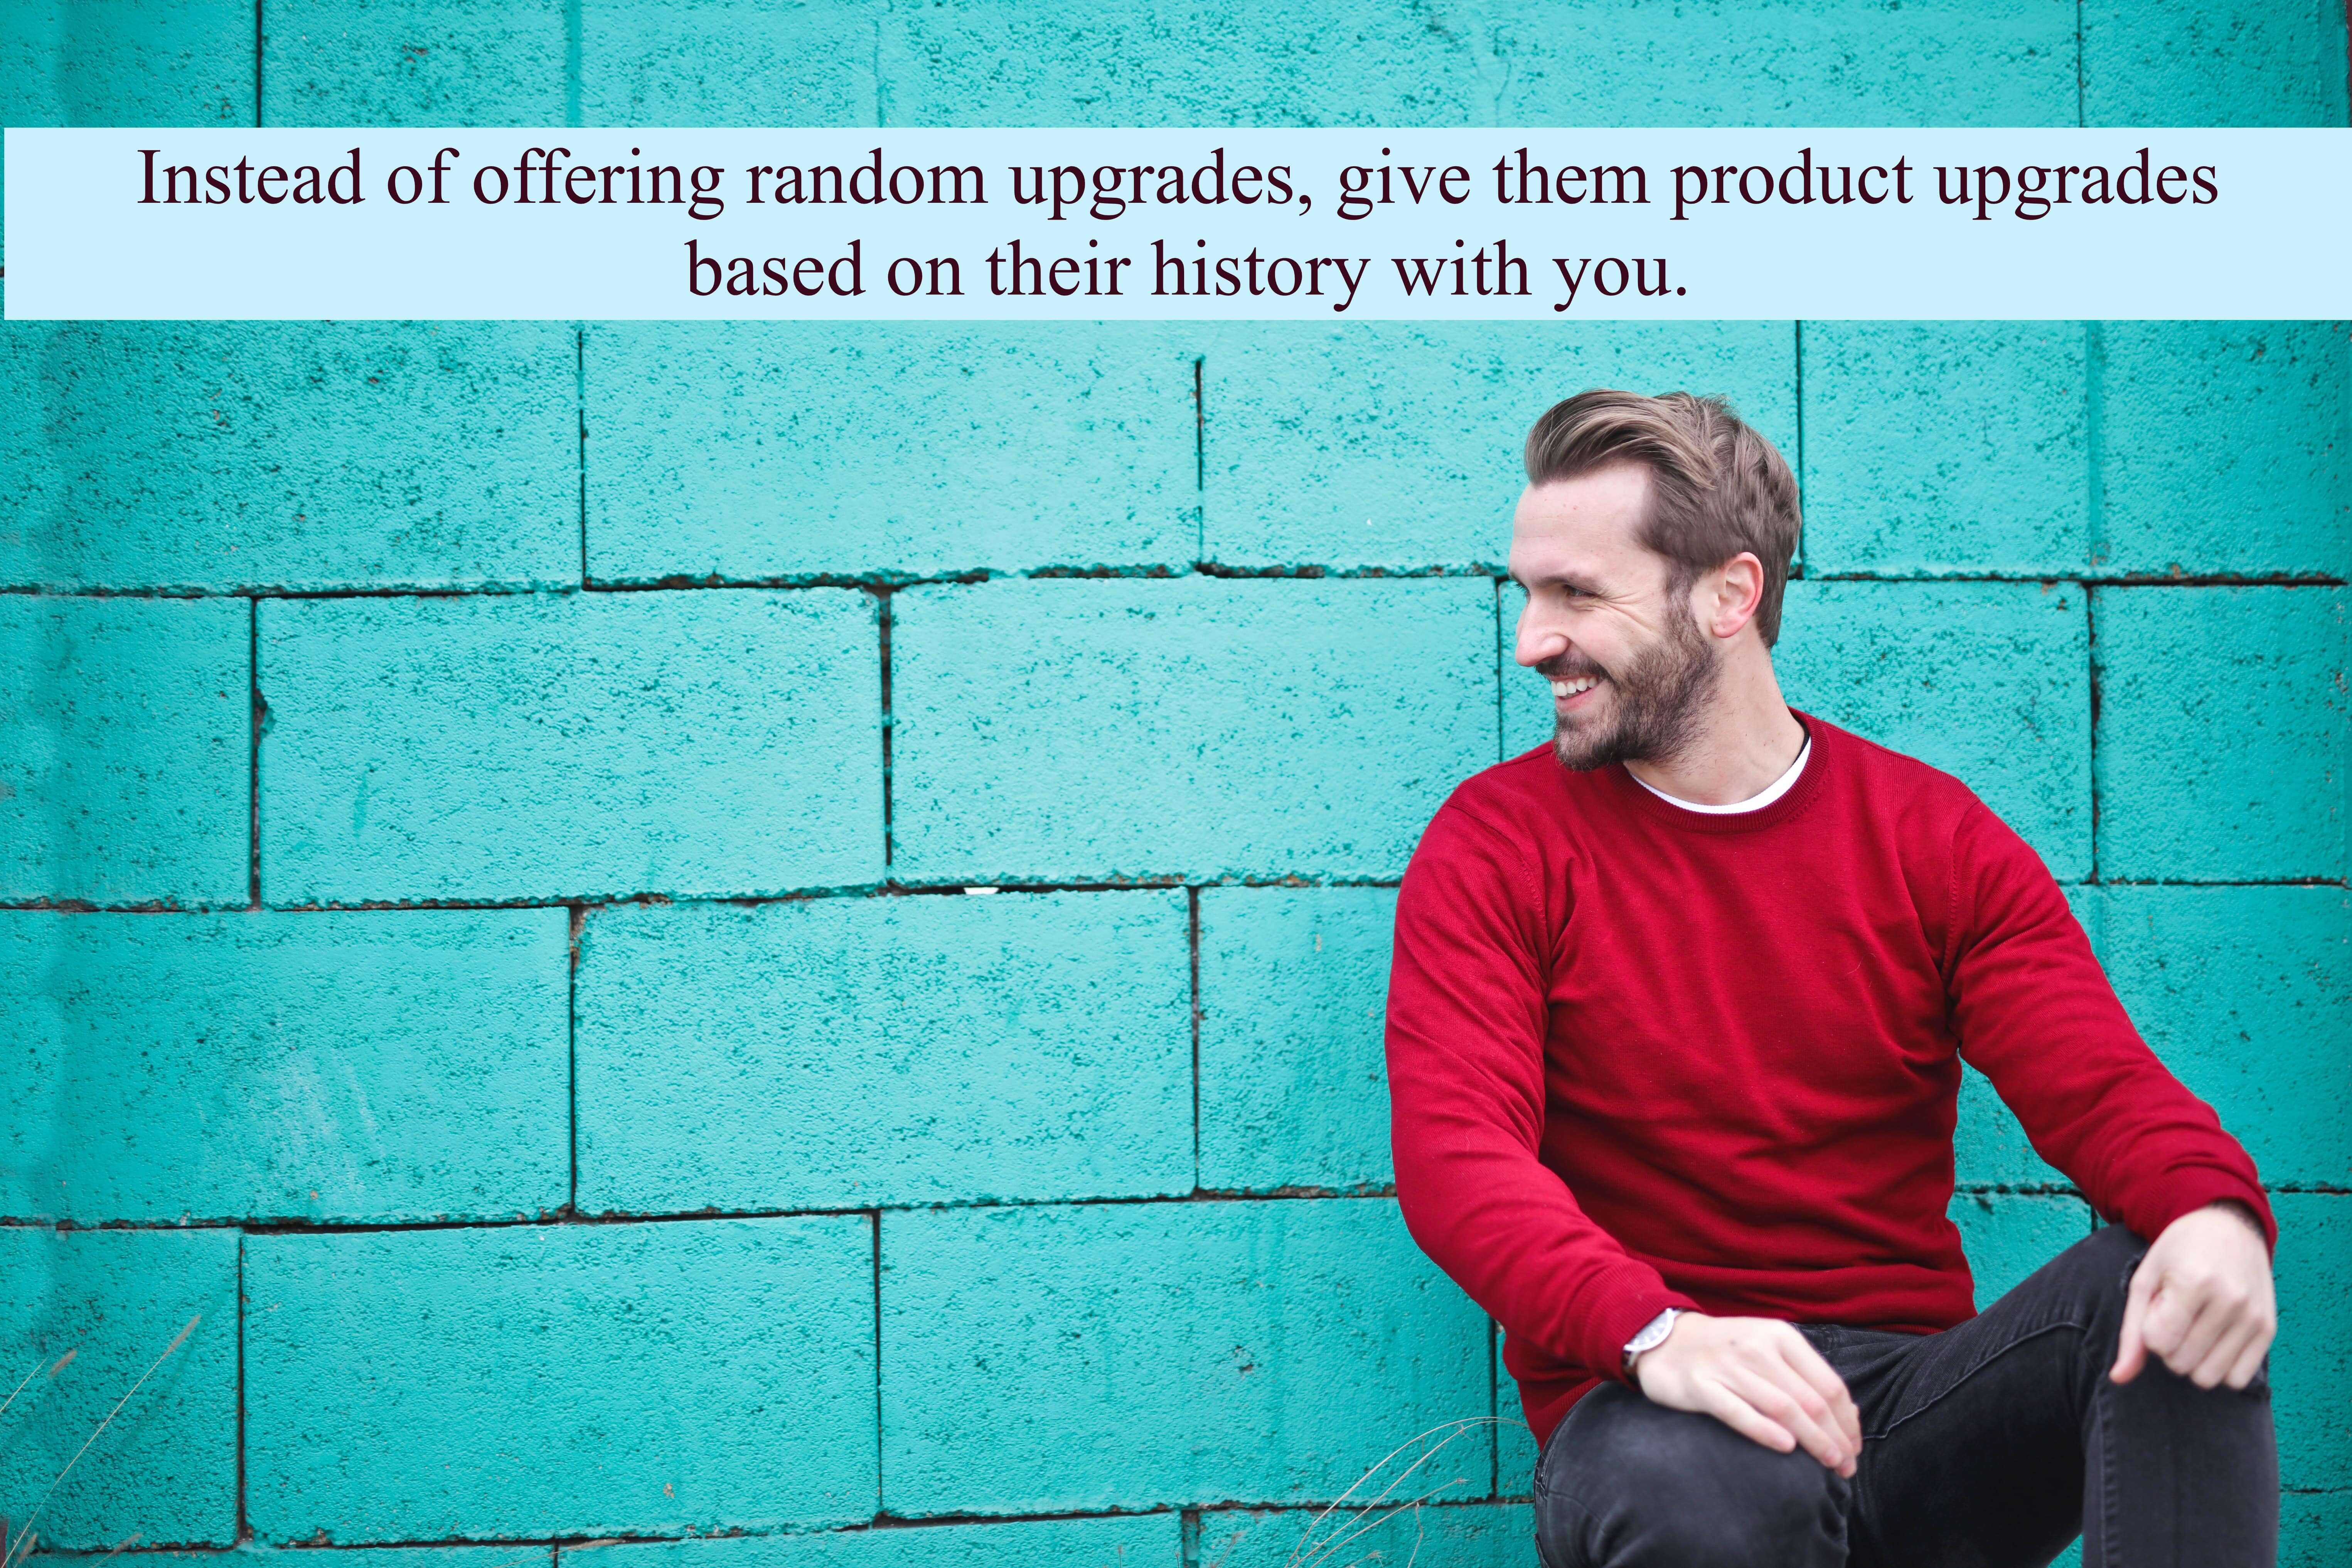 Instead of offering random upgrades, give them product upgrades based on their history with you.